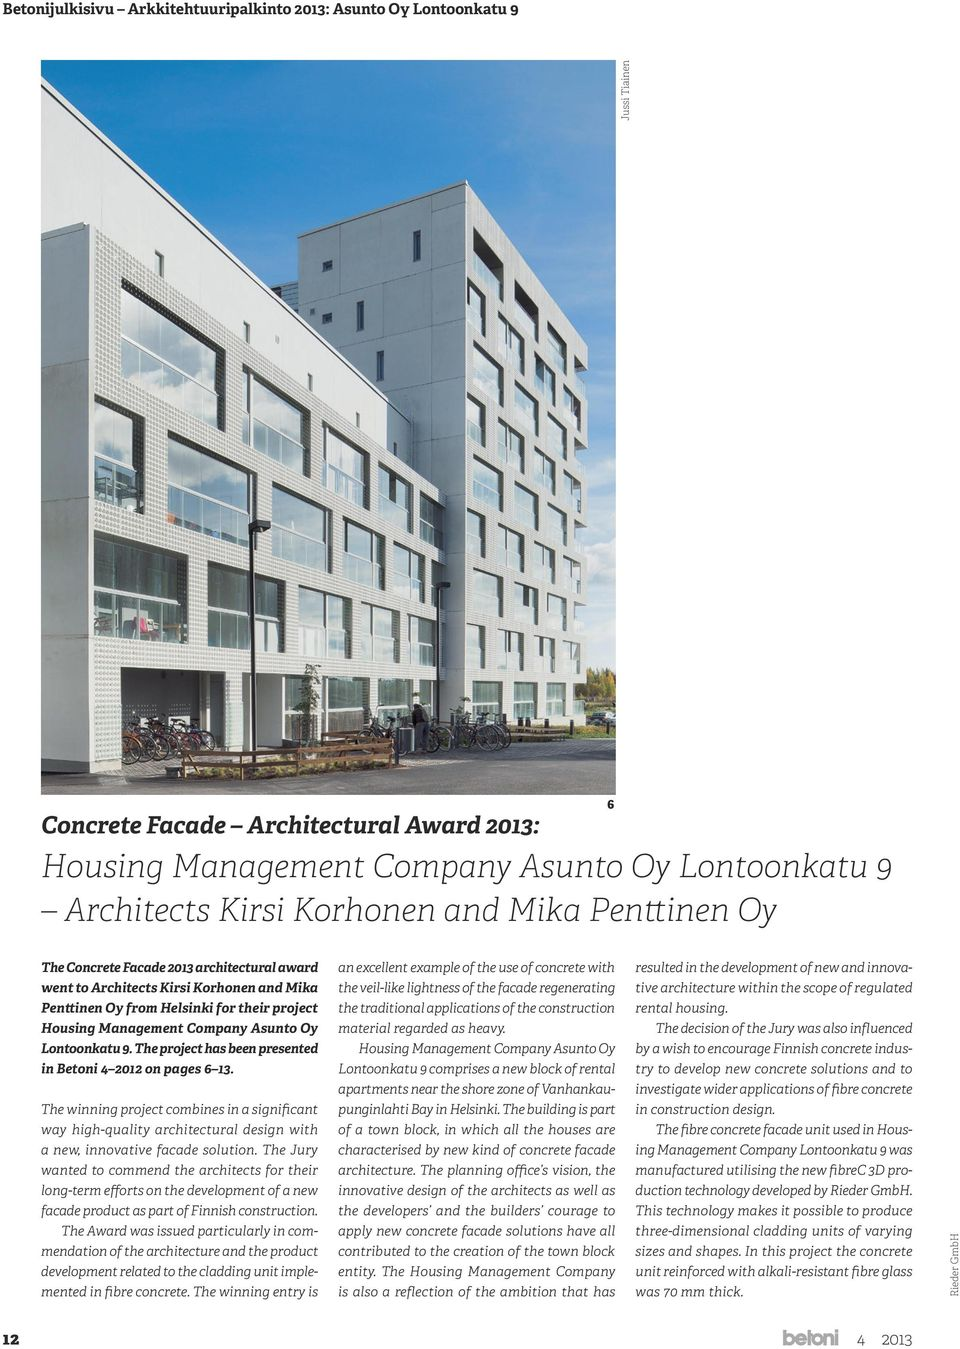 The project has been presented in Betoni 4 2012 on pages 6 13. The winning project combines in a significant way high-quality architectural design with a new, innovative facade solution.